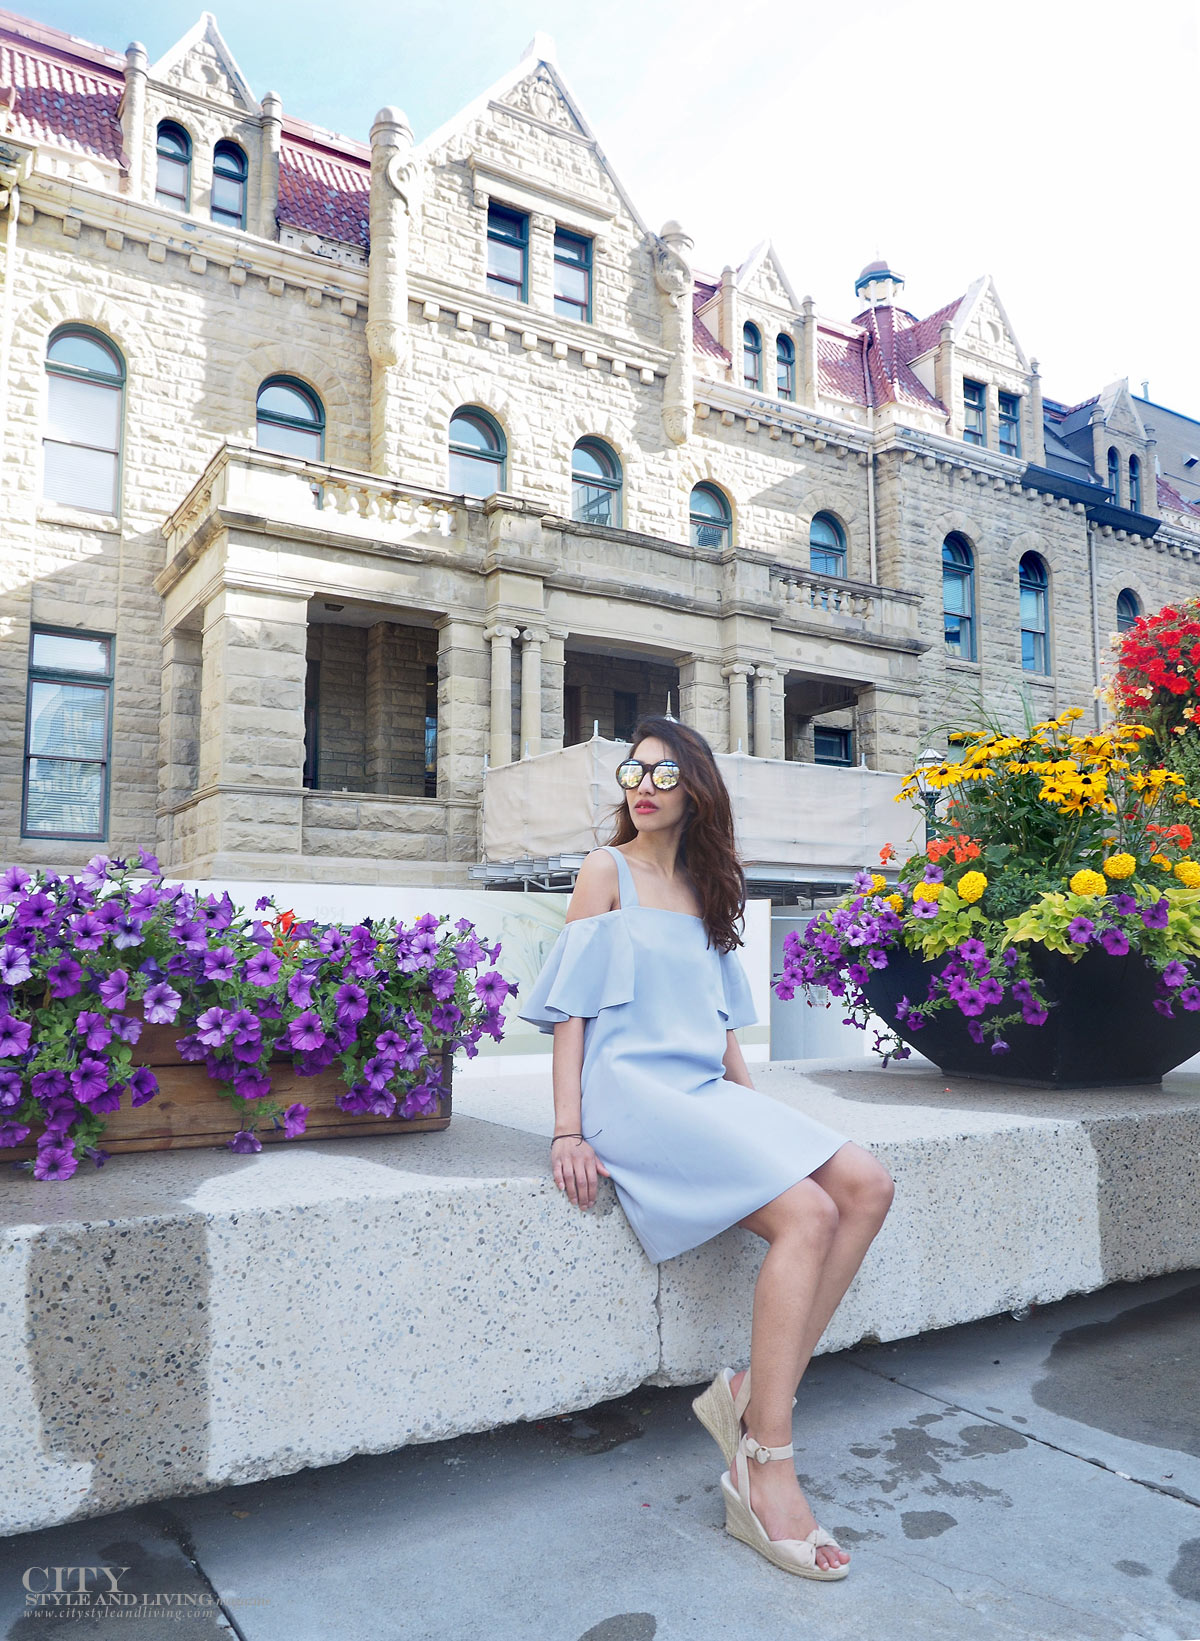 City STyle and Living The Editors Notebook style blogger Downtown Calgary colourful flowers blooming during summer